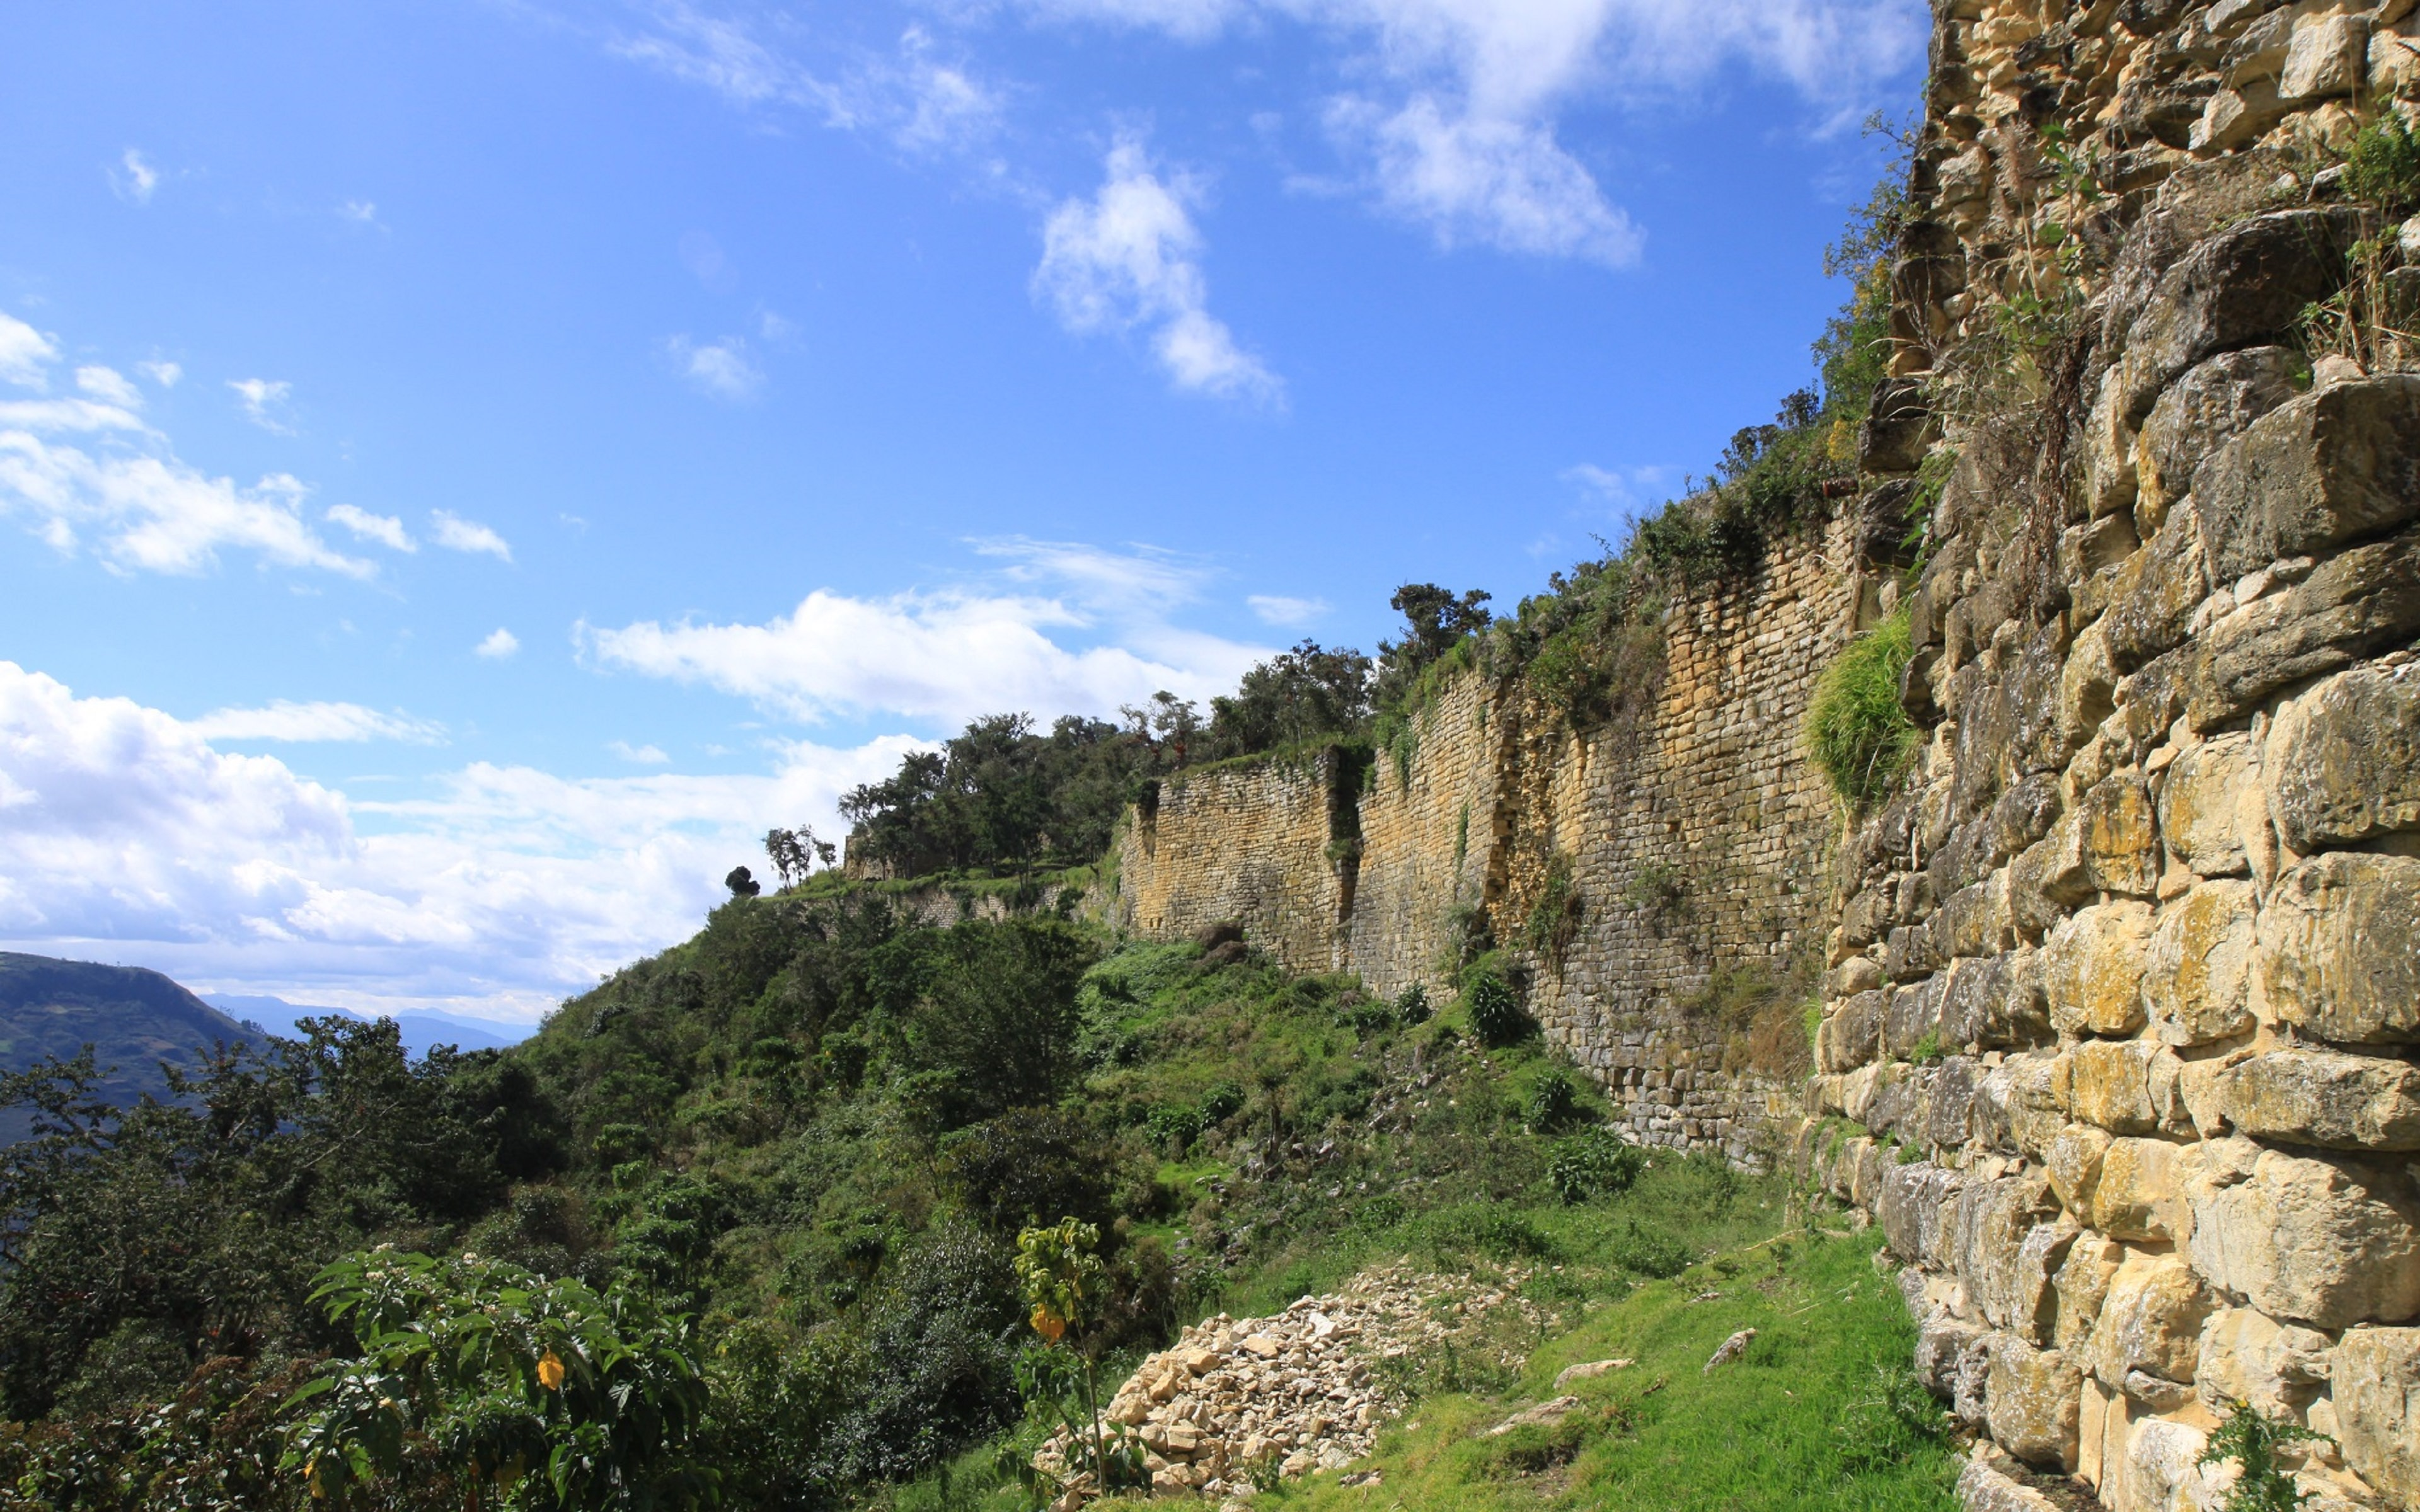 FEATURED CHACHAPOYAS - Chachapoyas & Kuélap